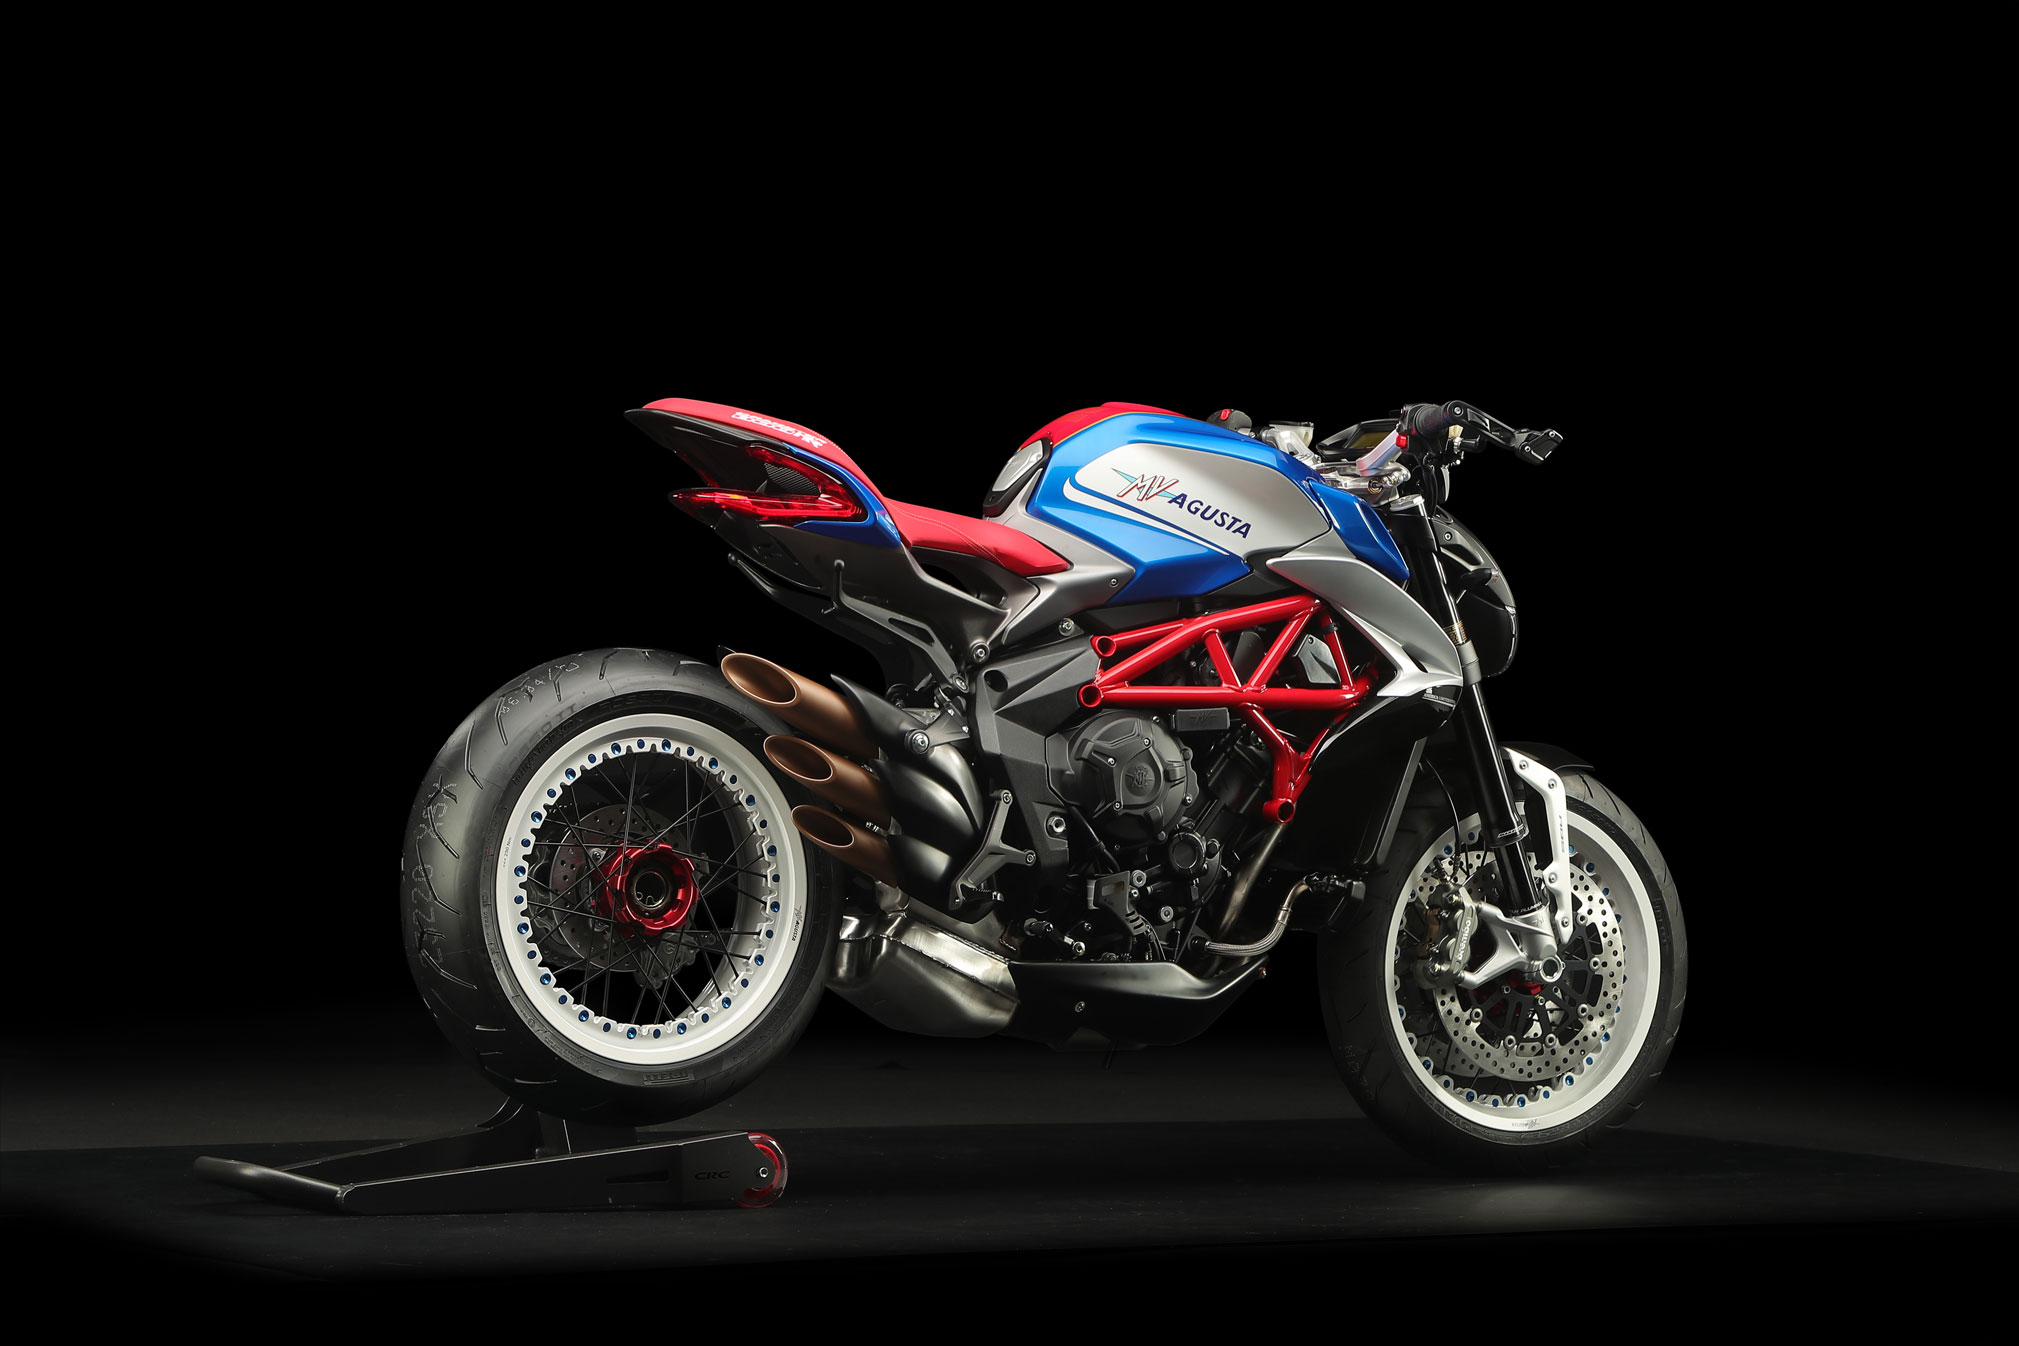 Mini Cooper Usa >> 2019 MV Agusta Dragster 800 RR America Guide • Total Motorcycle